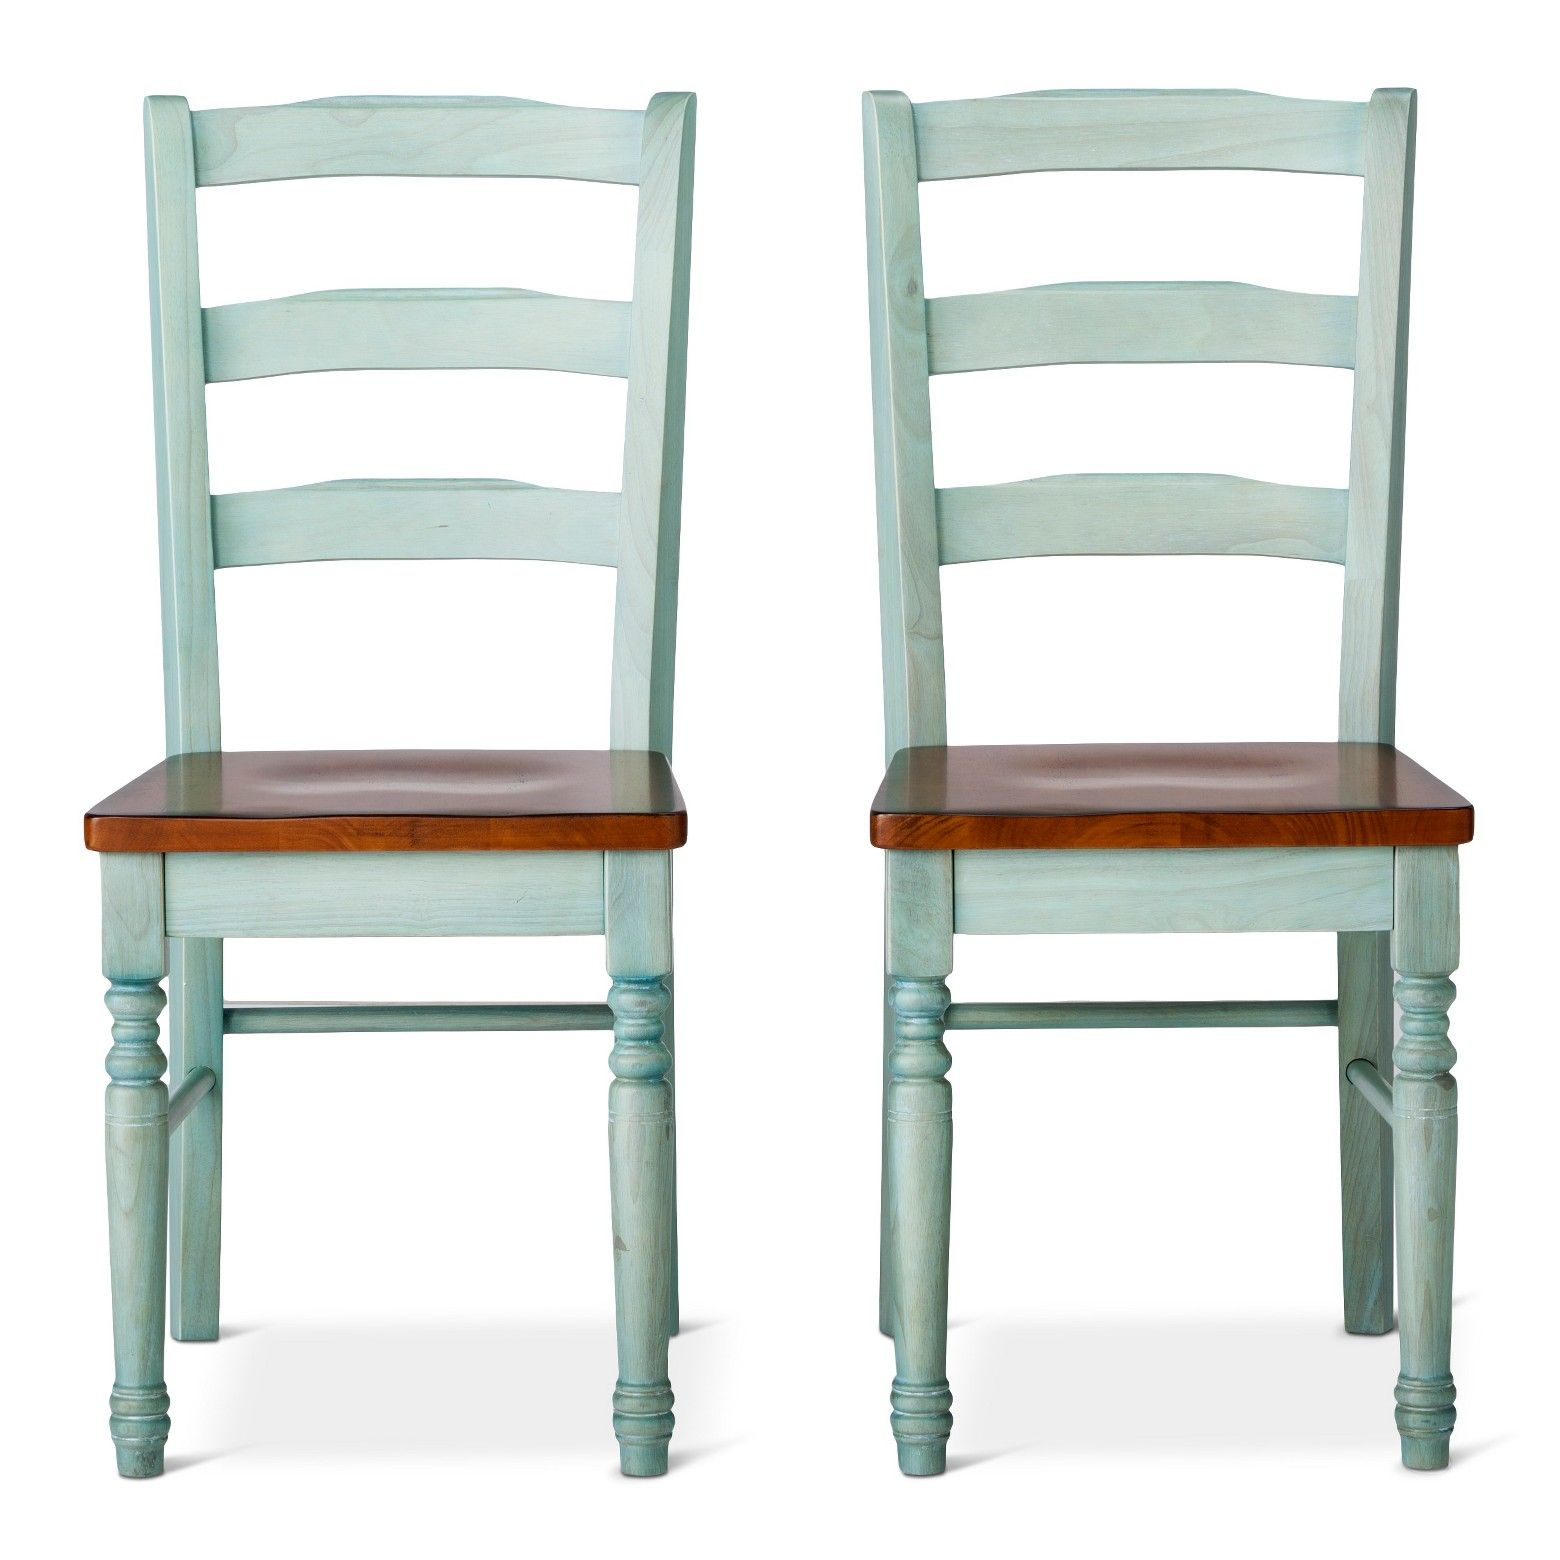 Ontrend, shabbychic style with distressed finish • Comfy